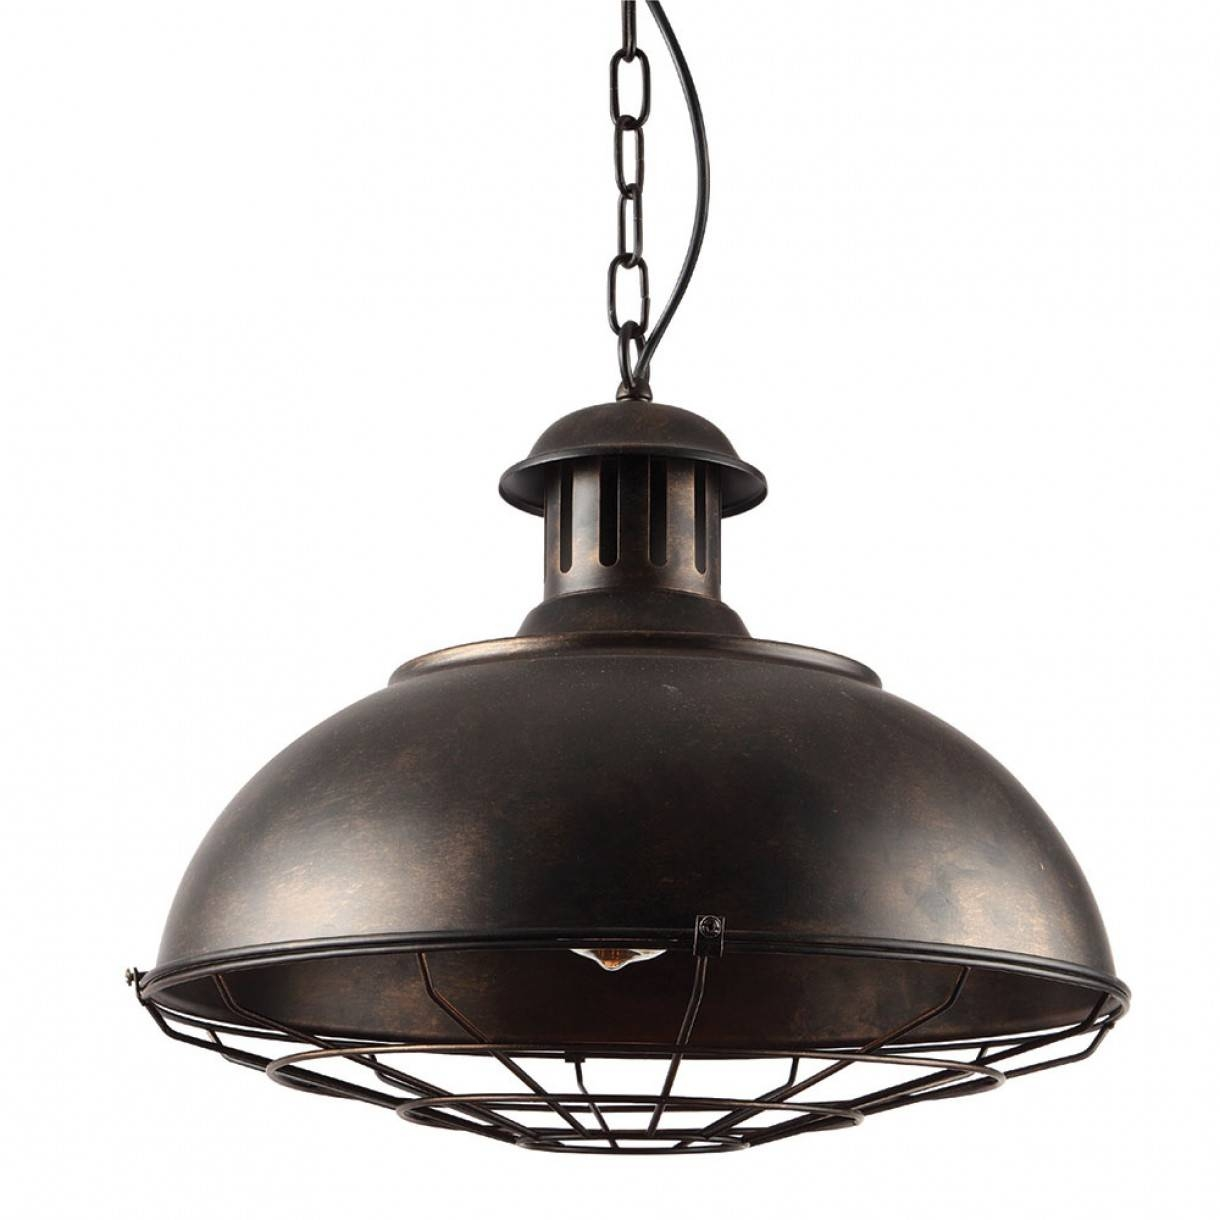 Cage Shade 1 Light Chain Pendant with regard to Traditional Pendant Lights Australia (Image 4 of 15)